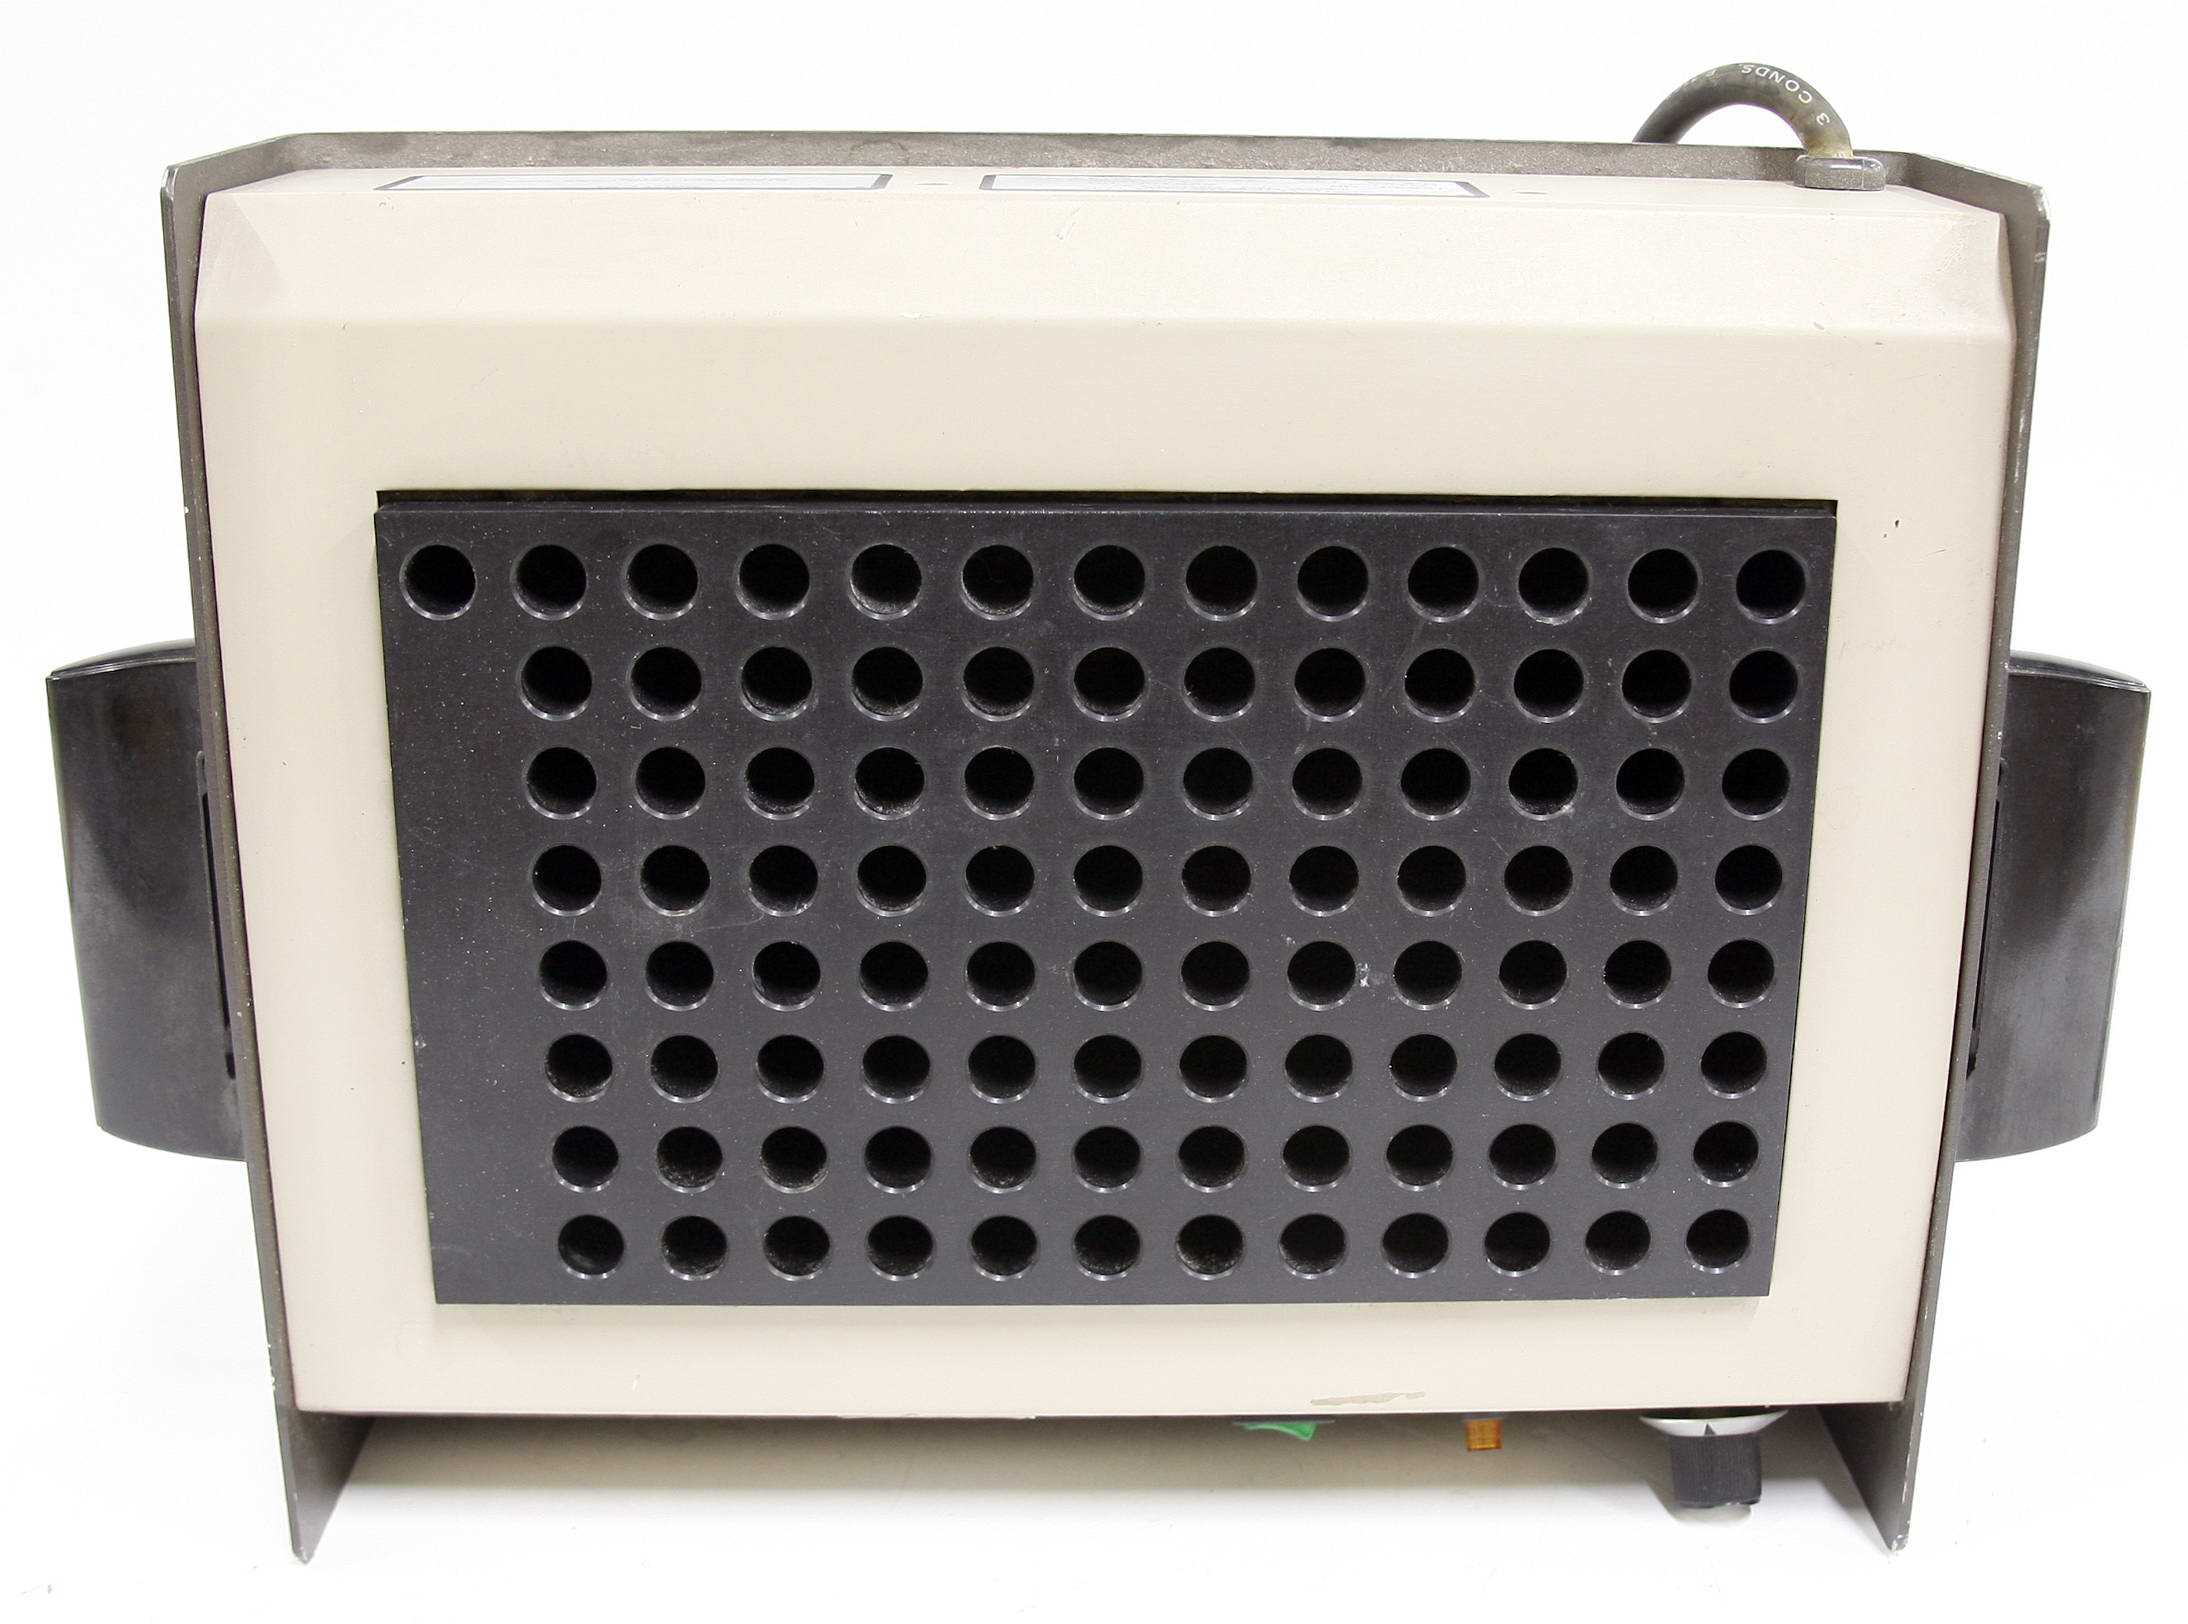 Barnstead Thermolyne DB66125 96 sample Dry Block Heater - 2